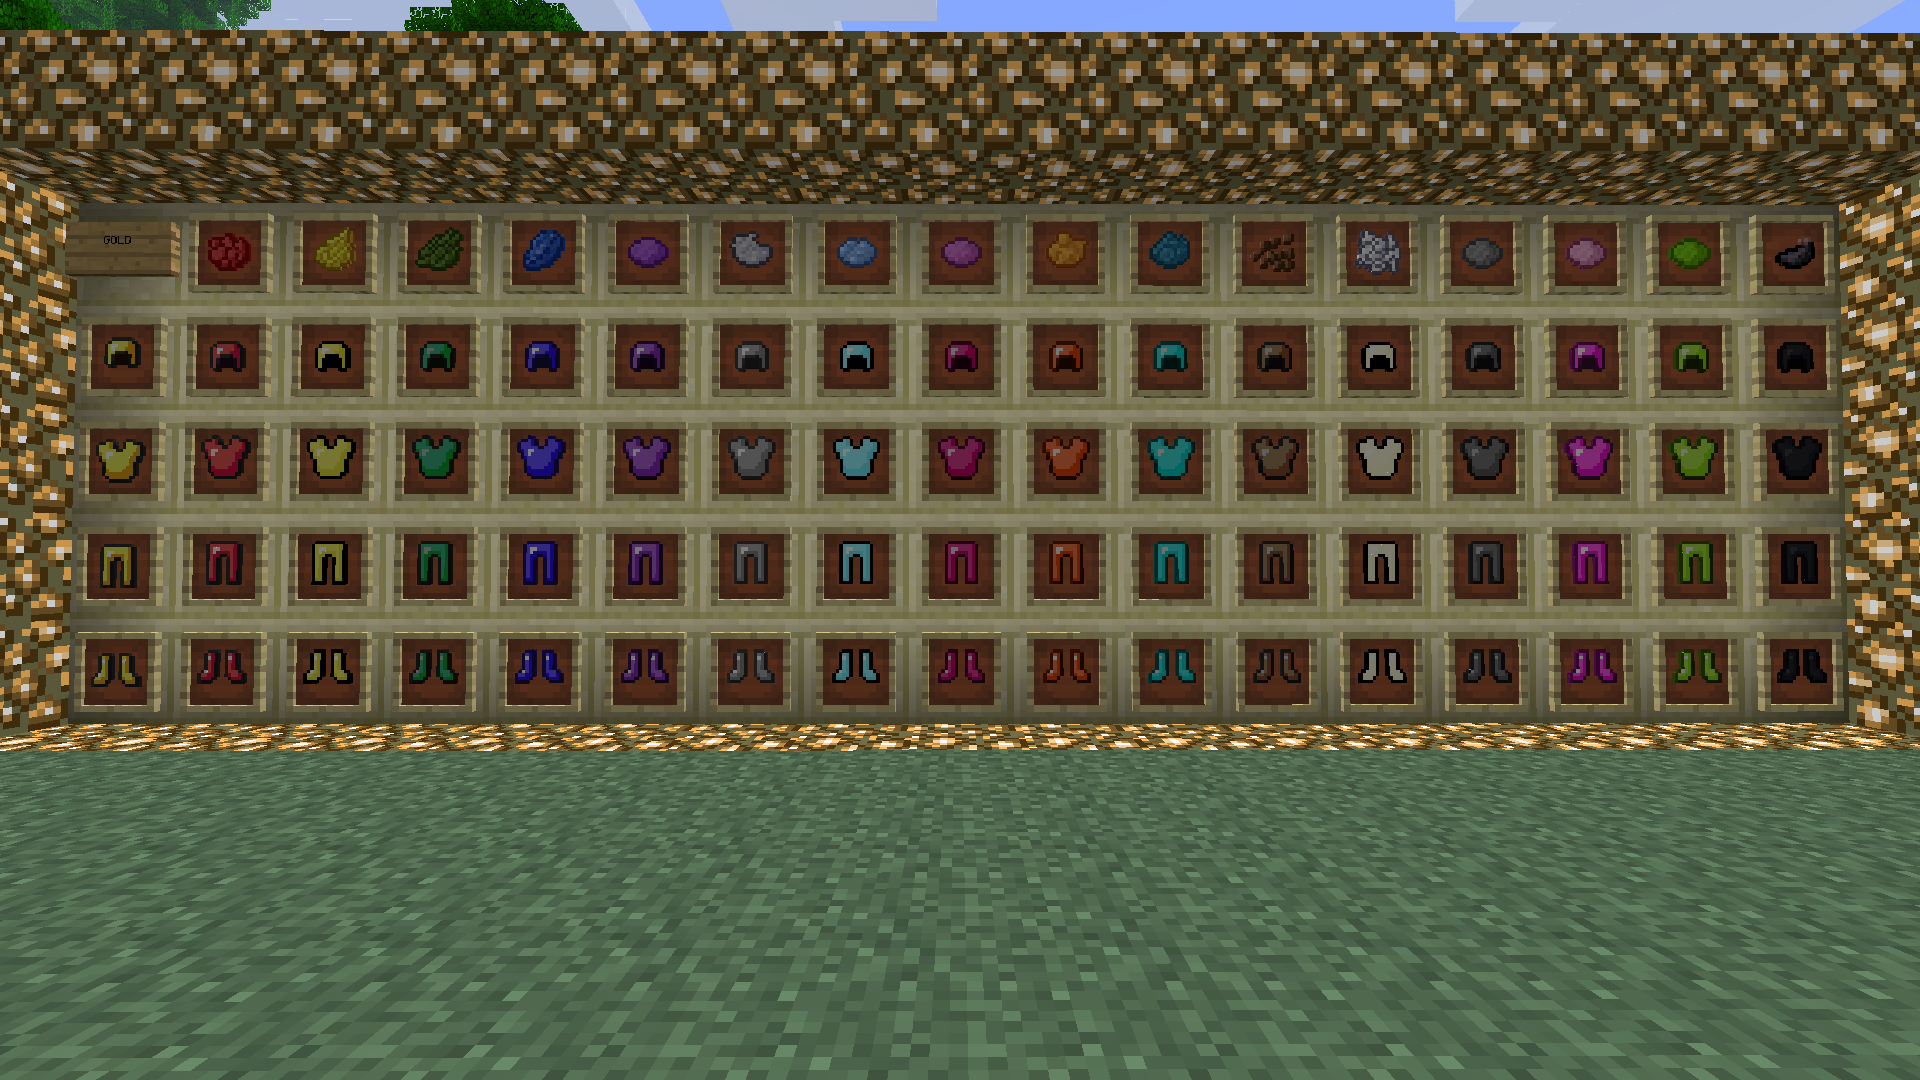 http://minecraft-forum.net/wp-content/uploads/2013/05/fe732__Colorful-Armor-Mod-3.png